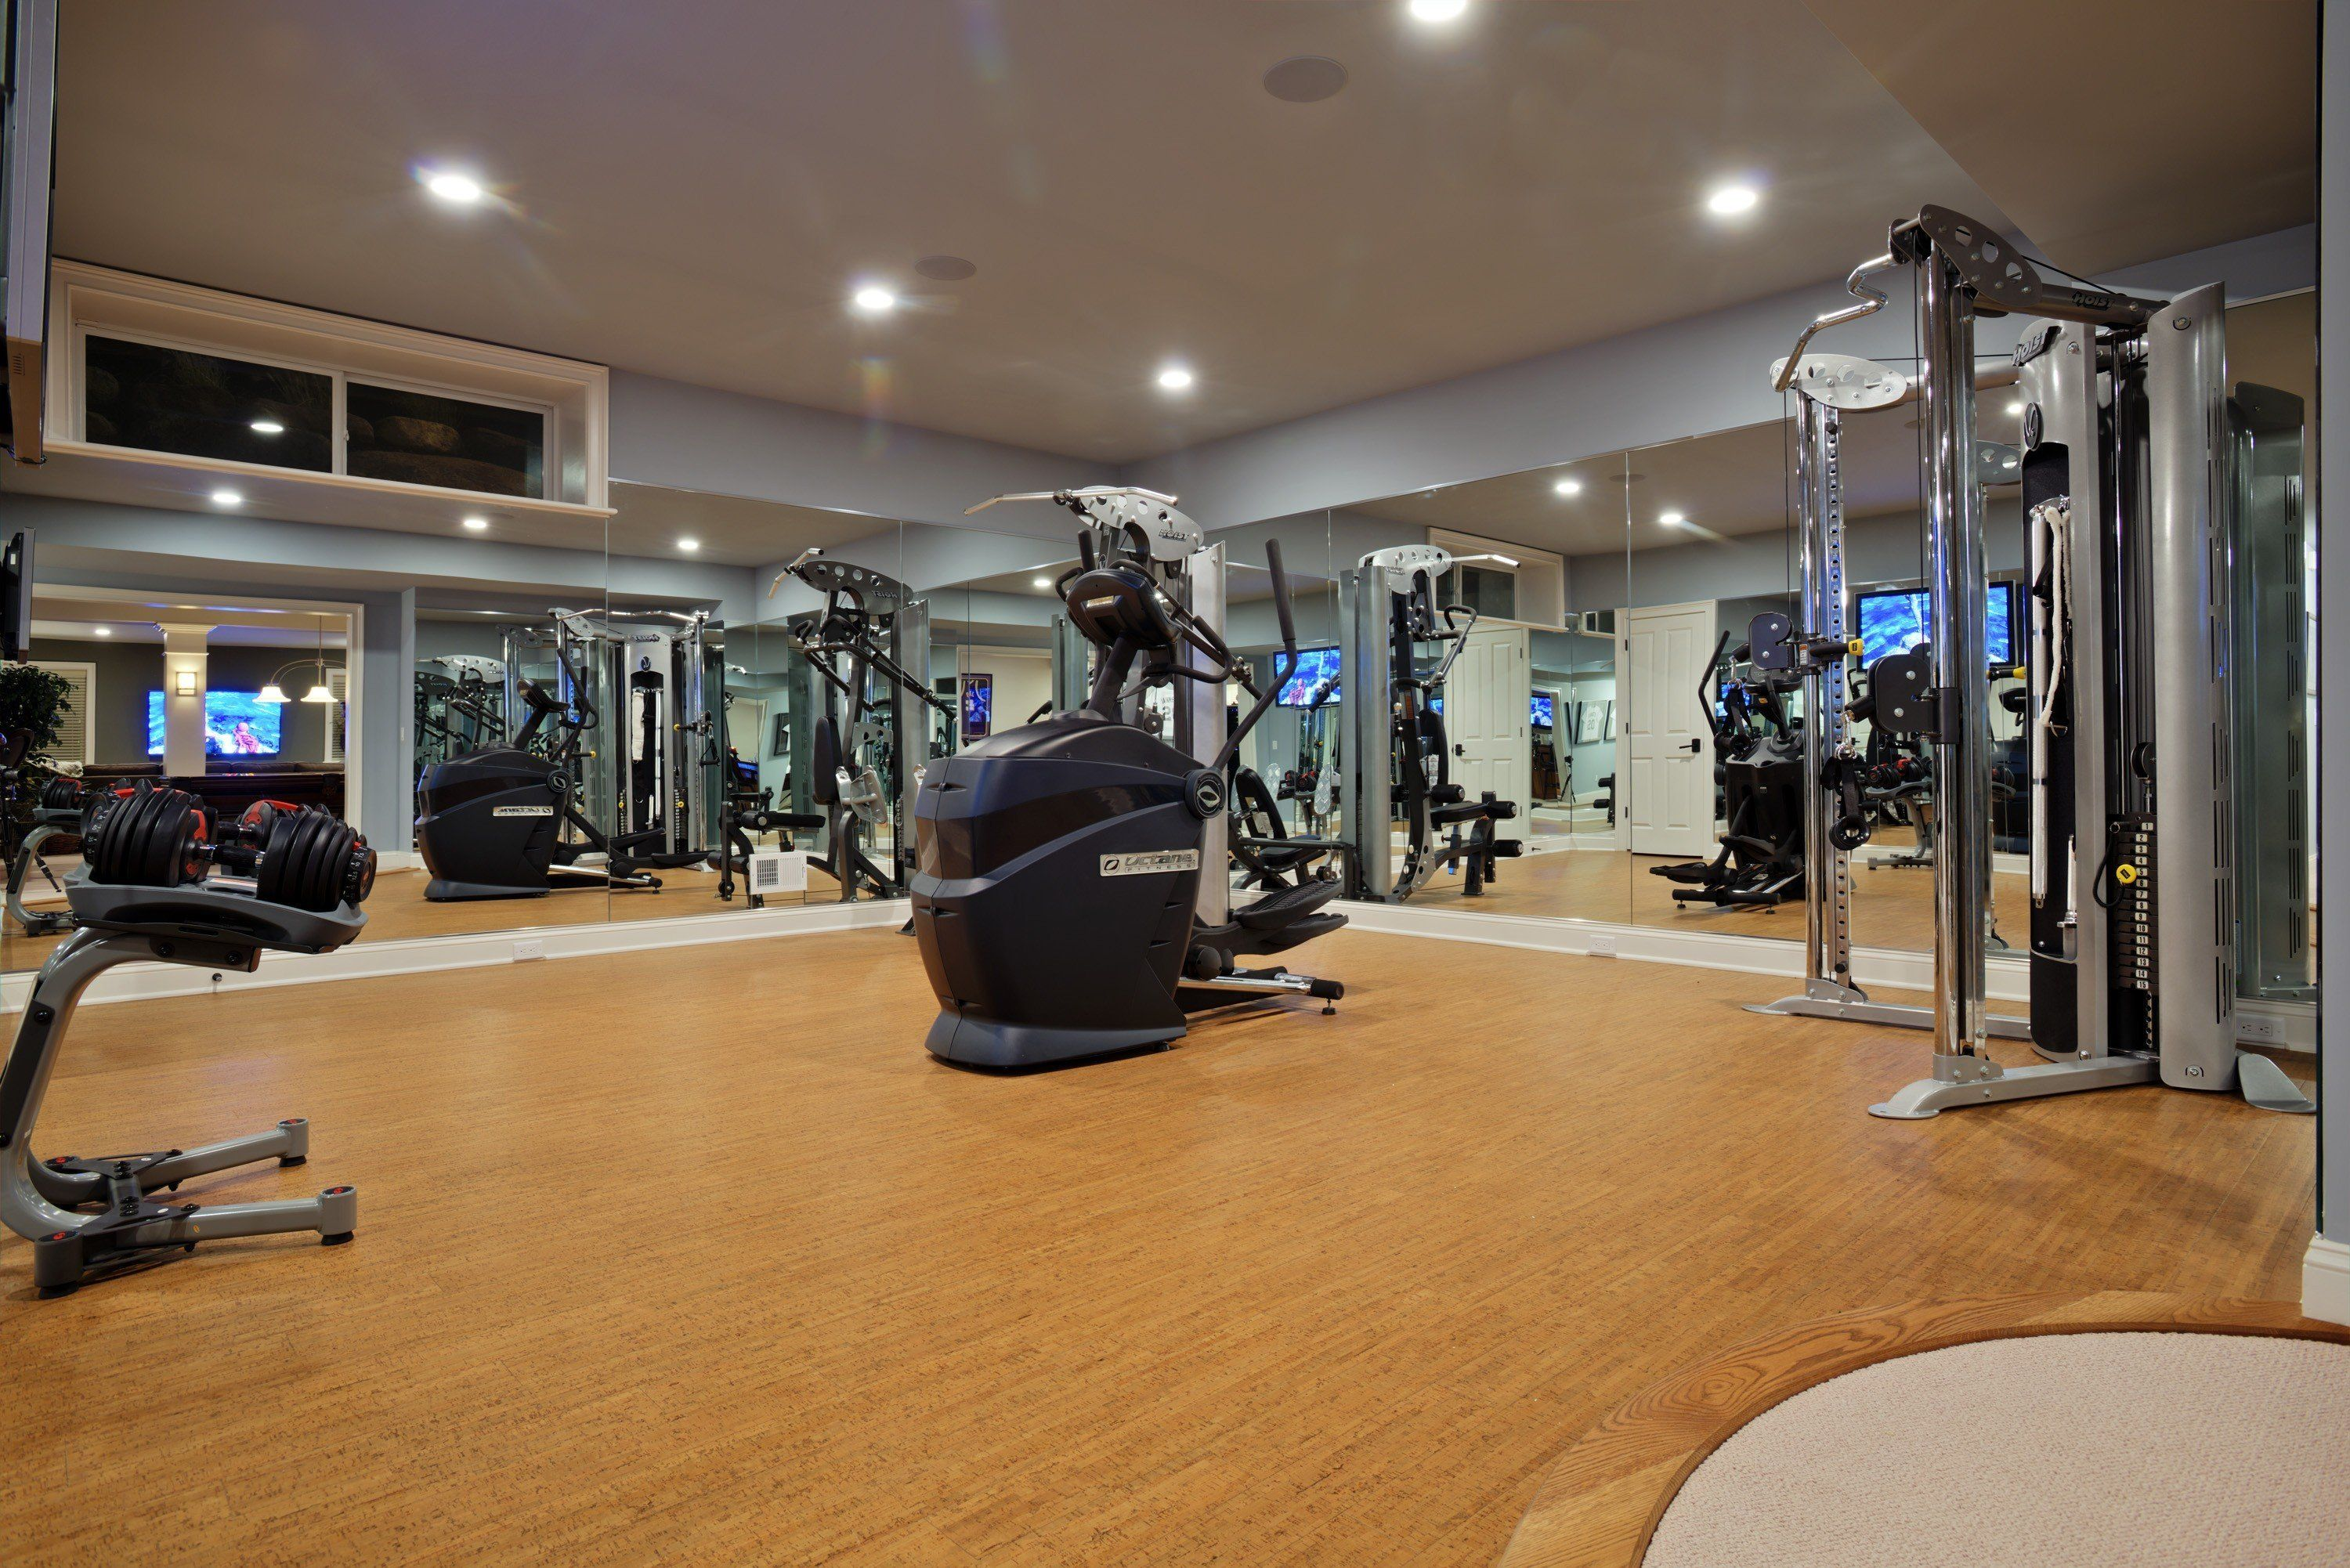 Impressive home gyms that offer the ultimate personal fitness